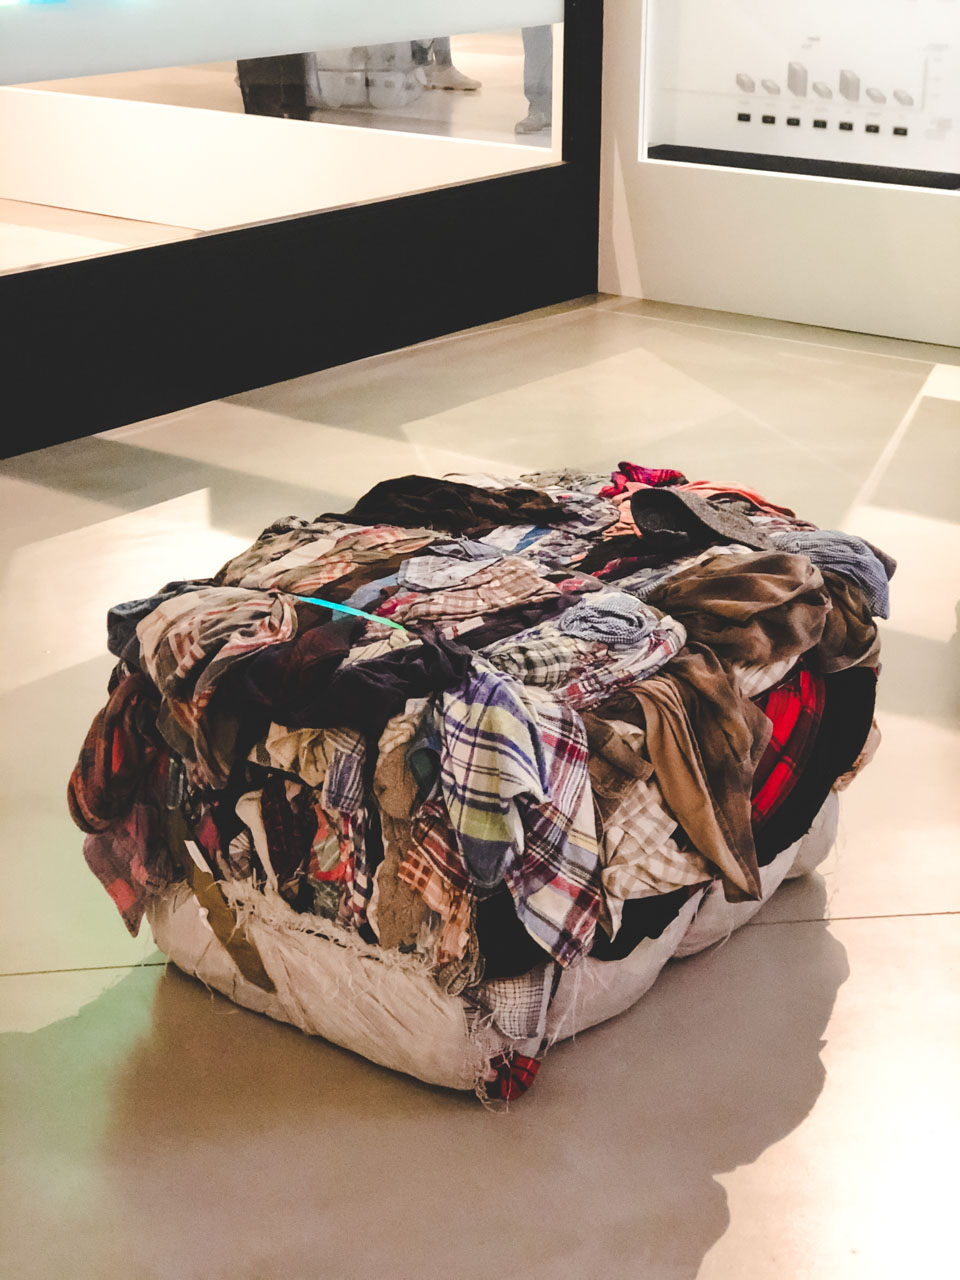 A seat made of a clothing bale at The Dark Sides of Fashion exhibition